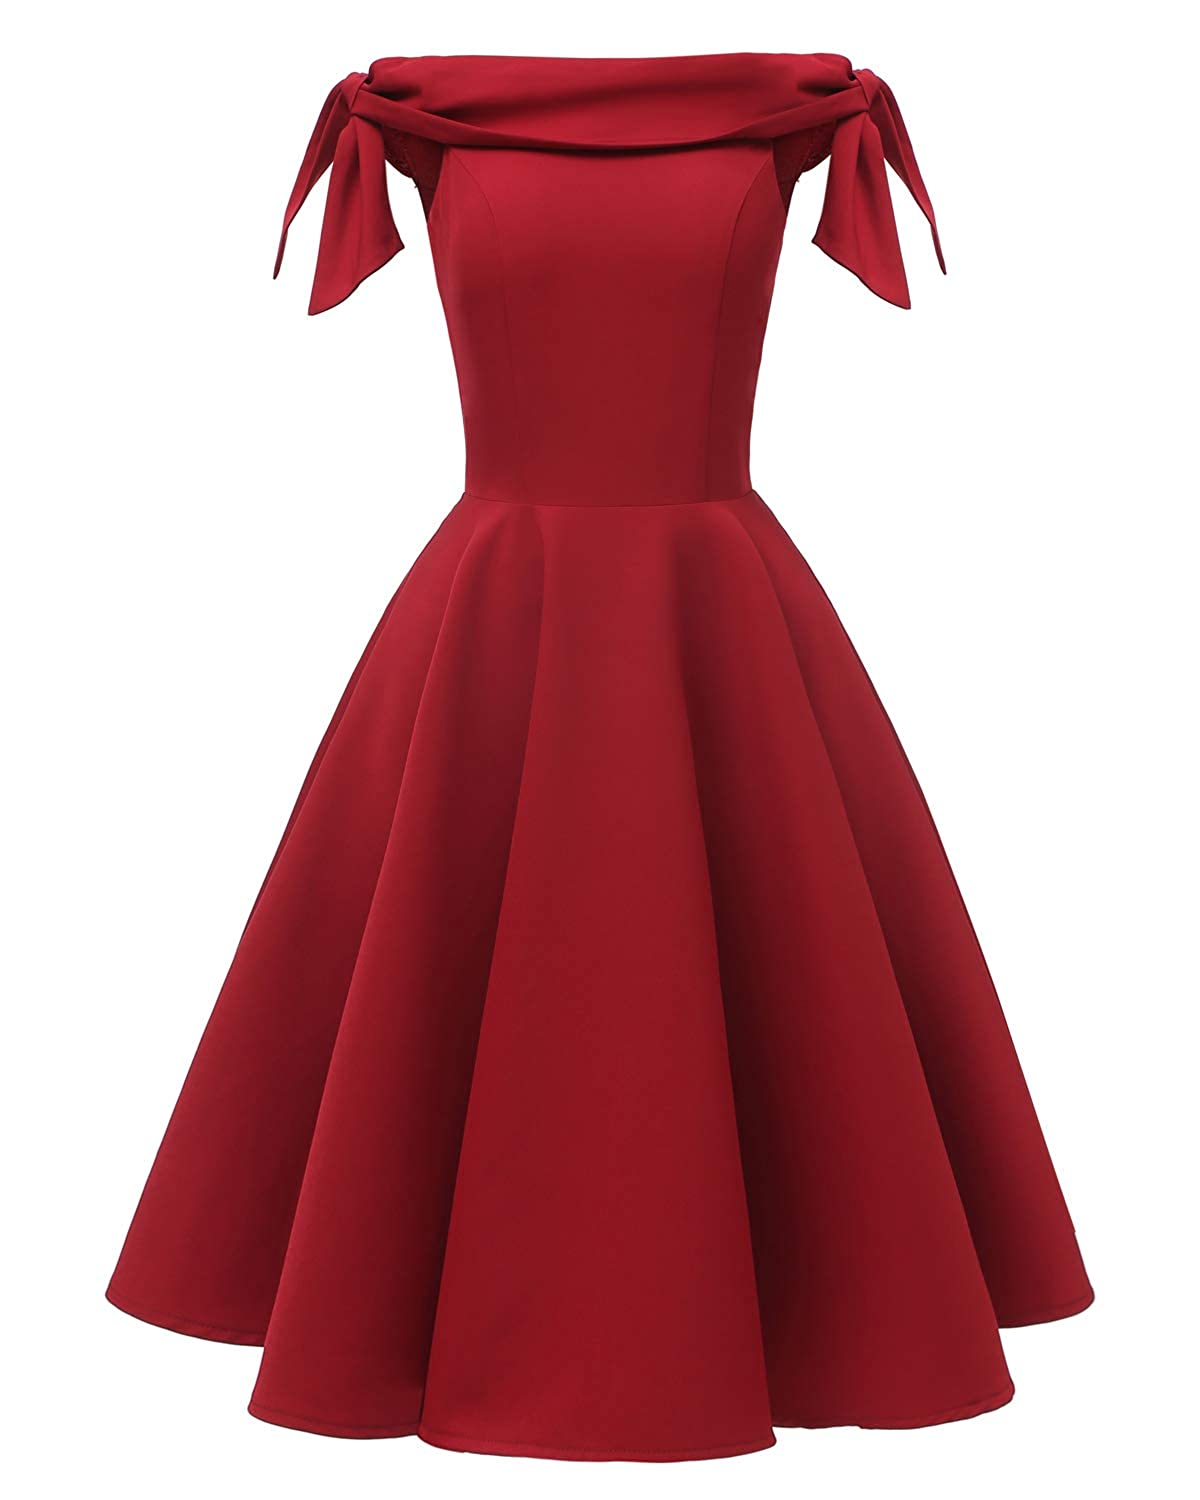 1950s Cocktail Dresses, Party Dresses Womens Off The Shoulder Vintage 1950s Bowknot Sleeve Cocktail Party Swing Dress Retro Rockabilly Evening Wedding Prom Dress $42.99 AT vintagedancer.com